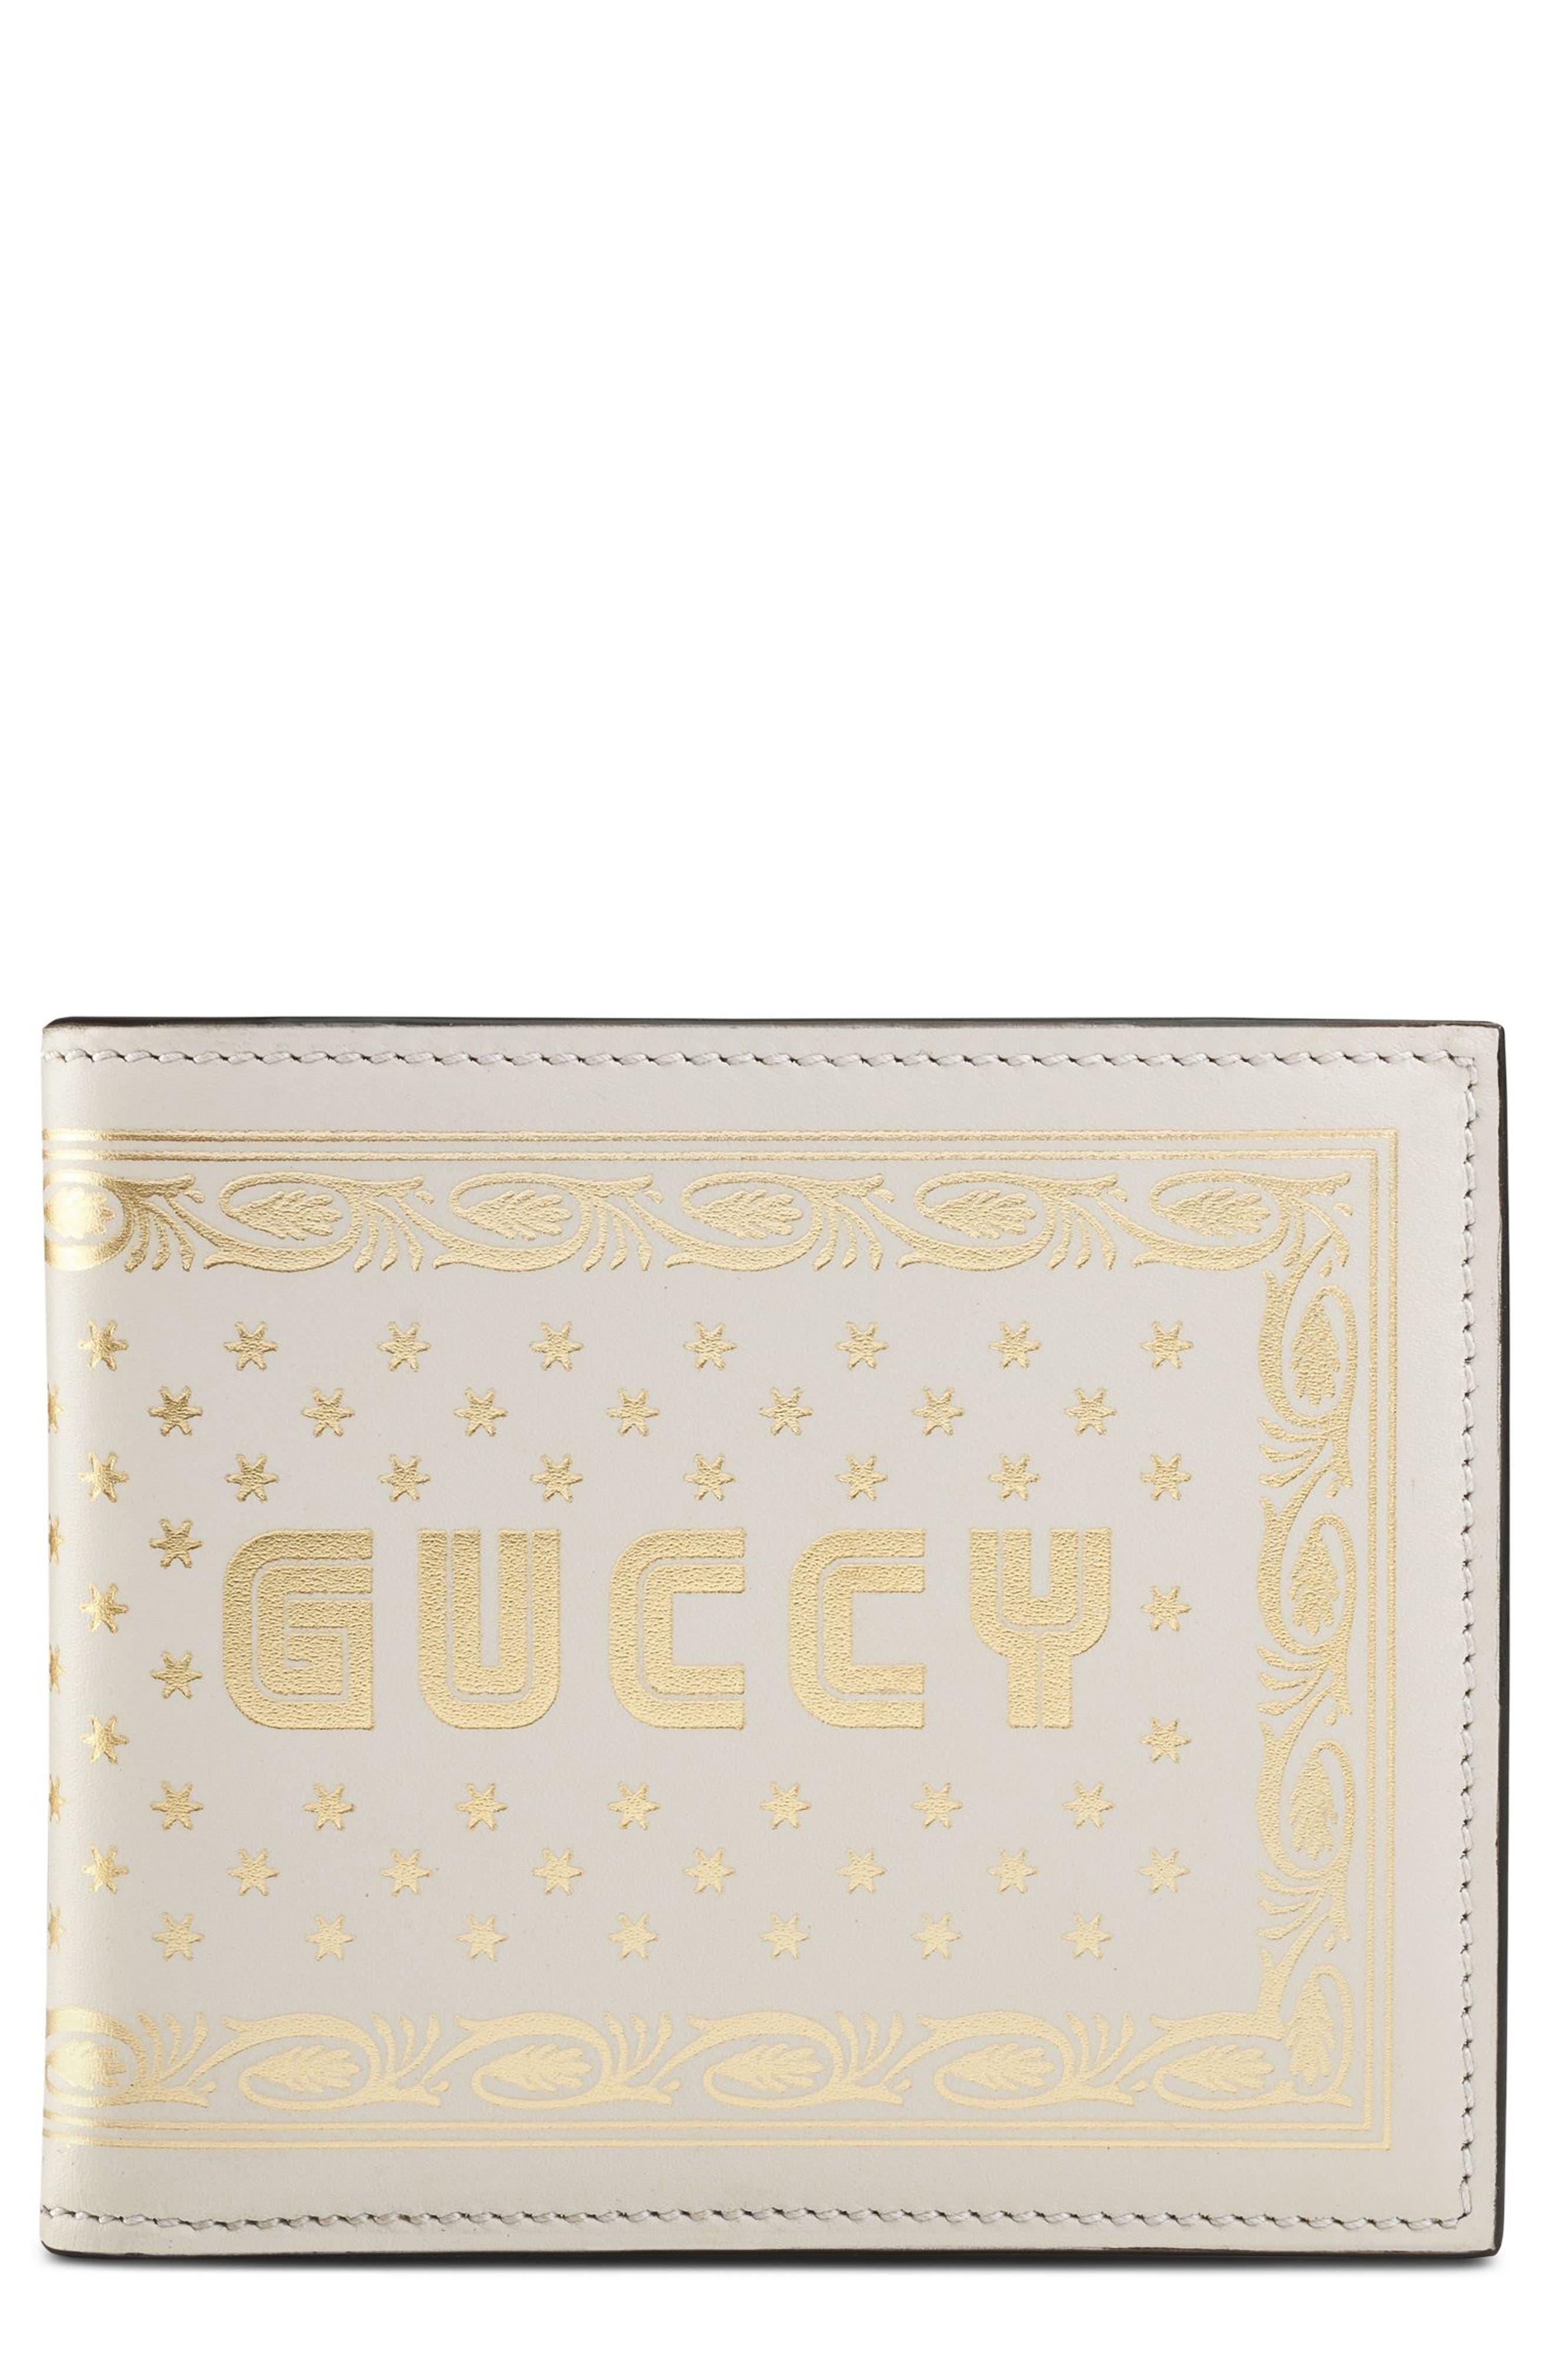 Guccy Print Leather Wallet,                         Main,                         color, White/ Gold